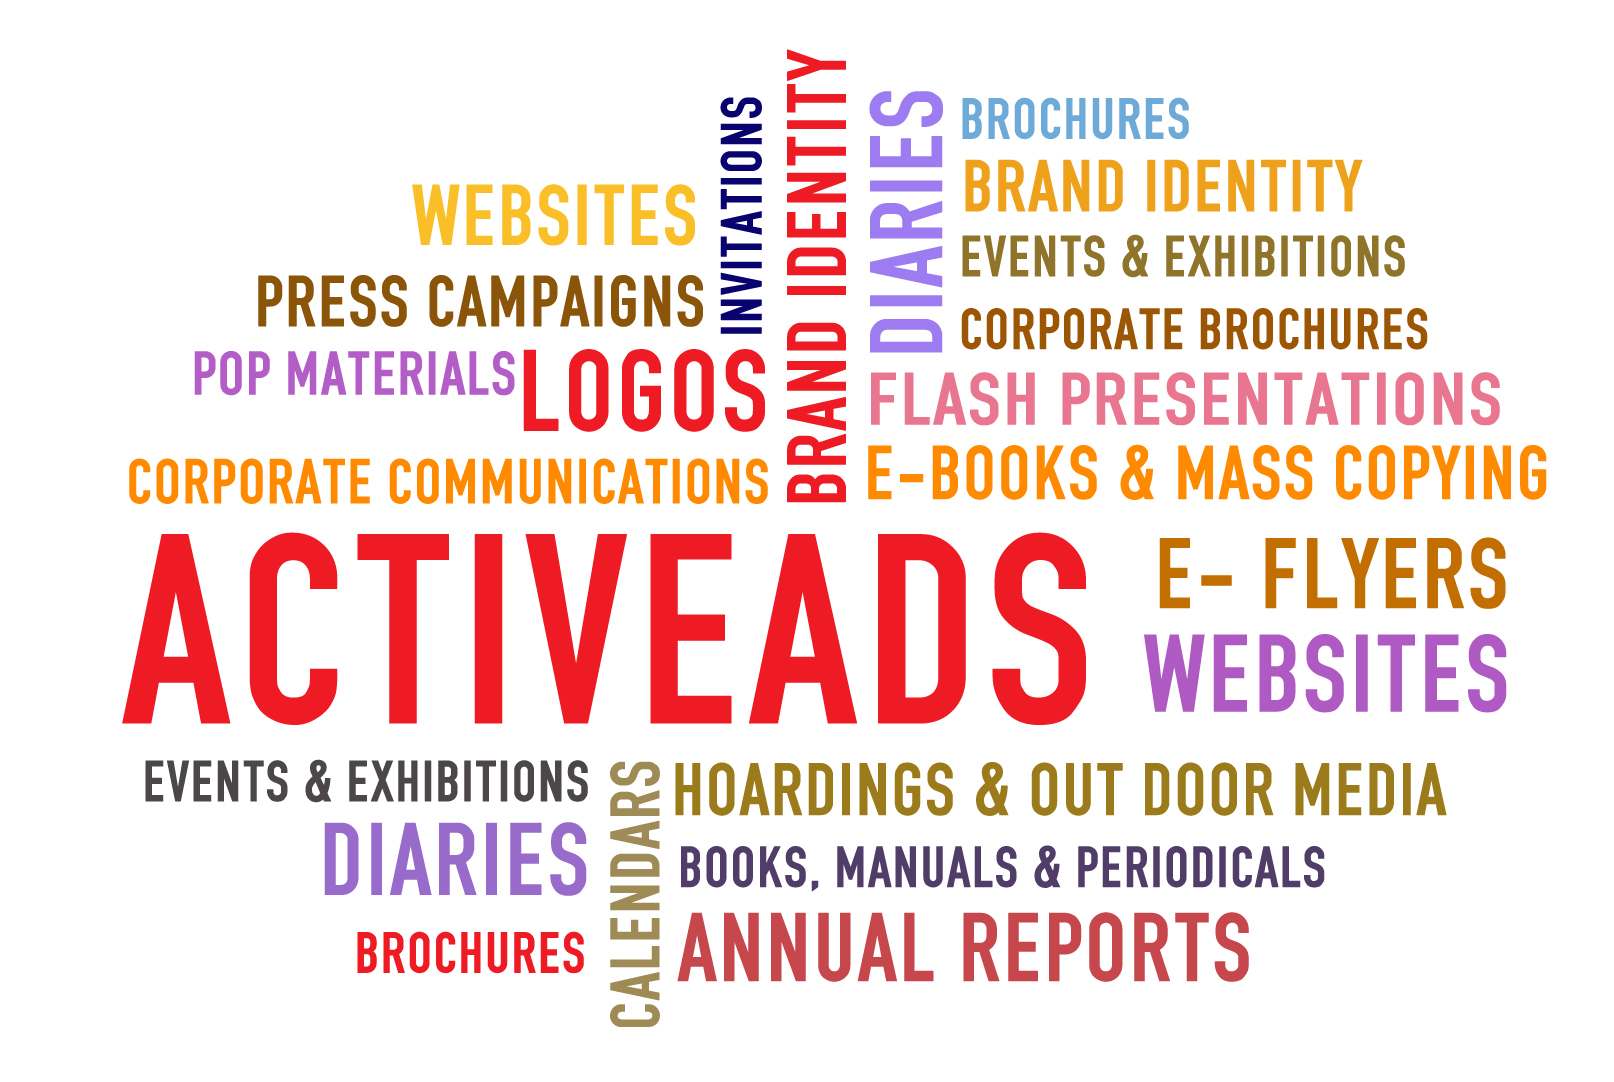 activeads services